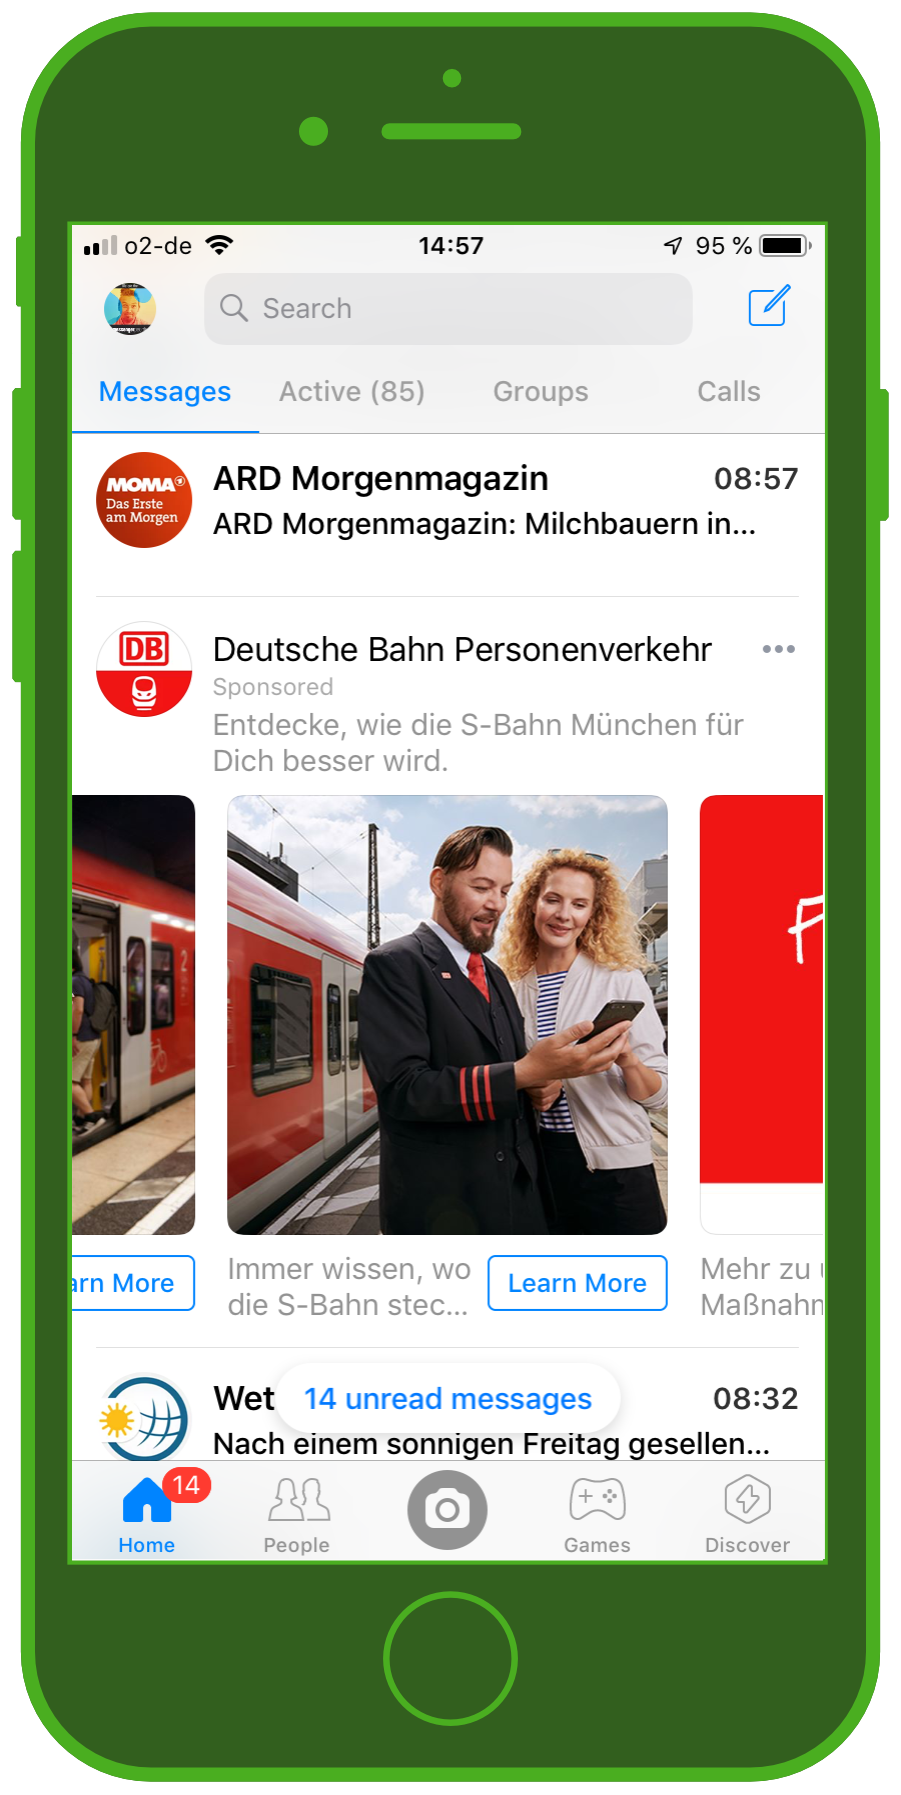 Messaging Apps & Brands Facebook Messenger Deutsche Bahn S-Bahn München Carousel Ad 3